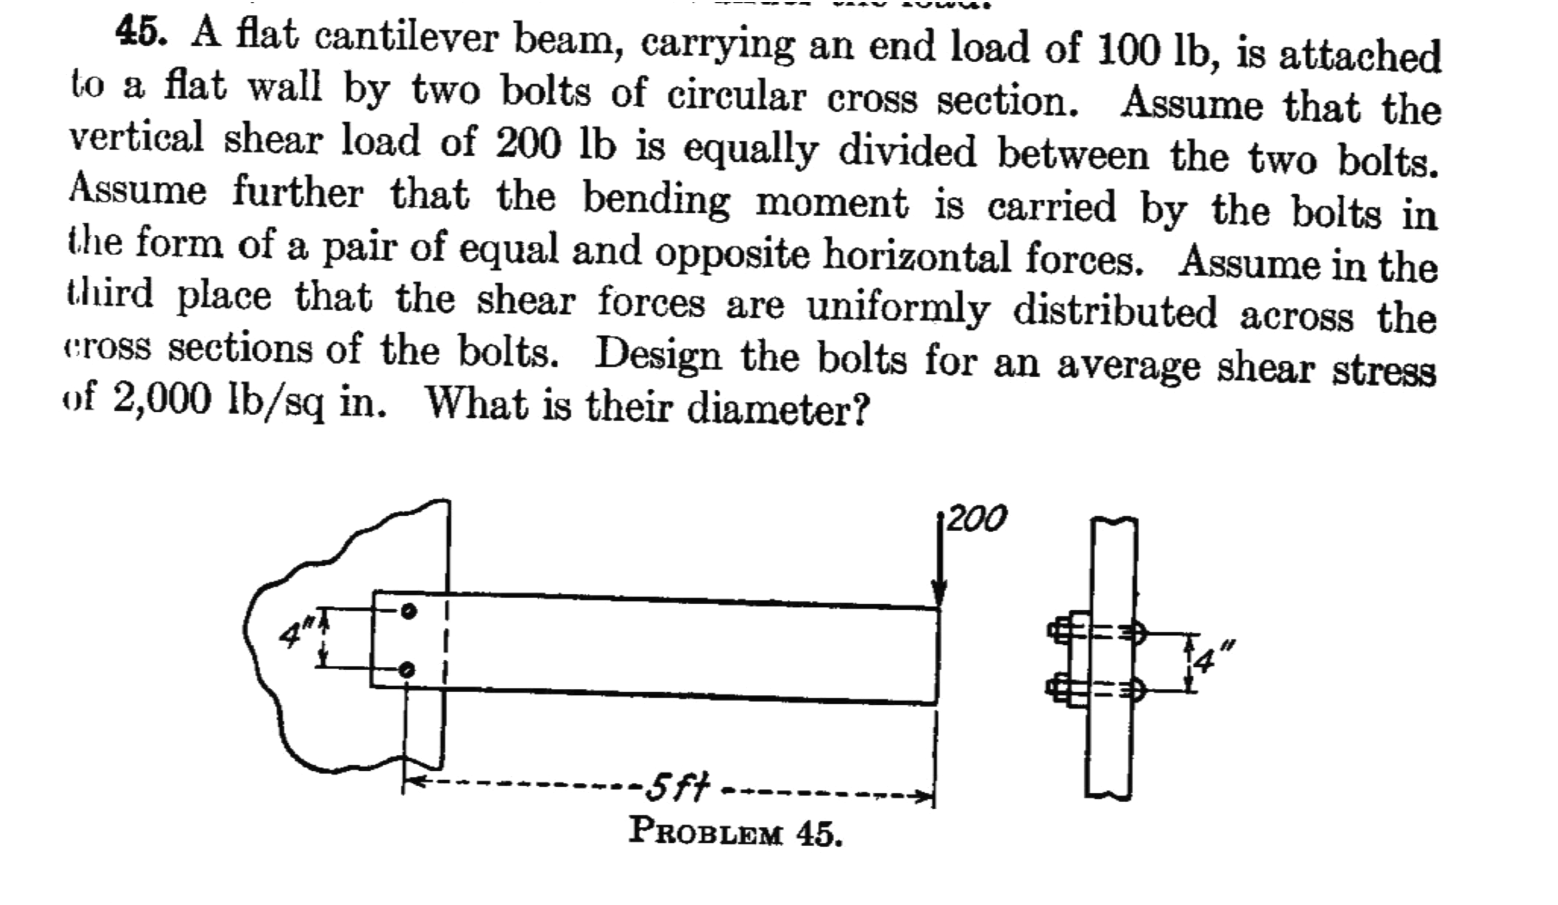 A flat cantilever beam, carrying an end load of 10